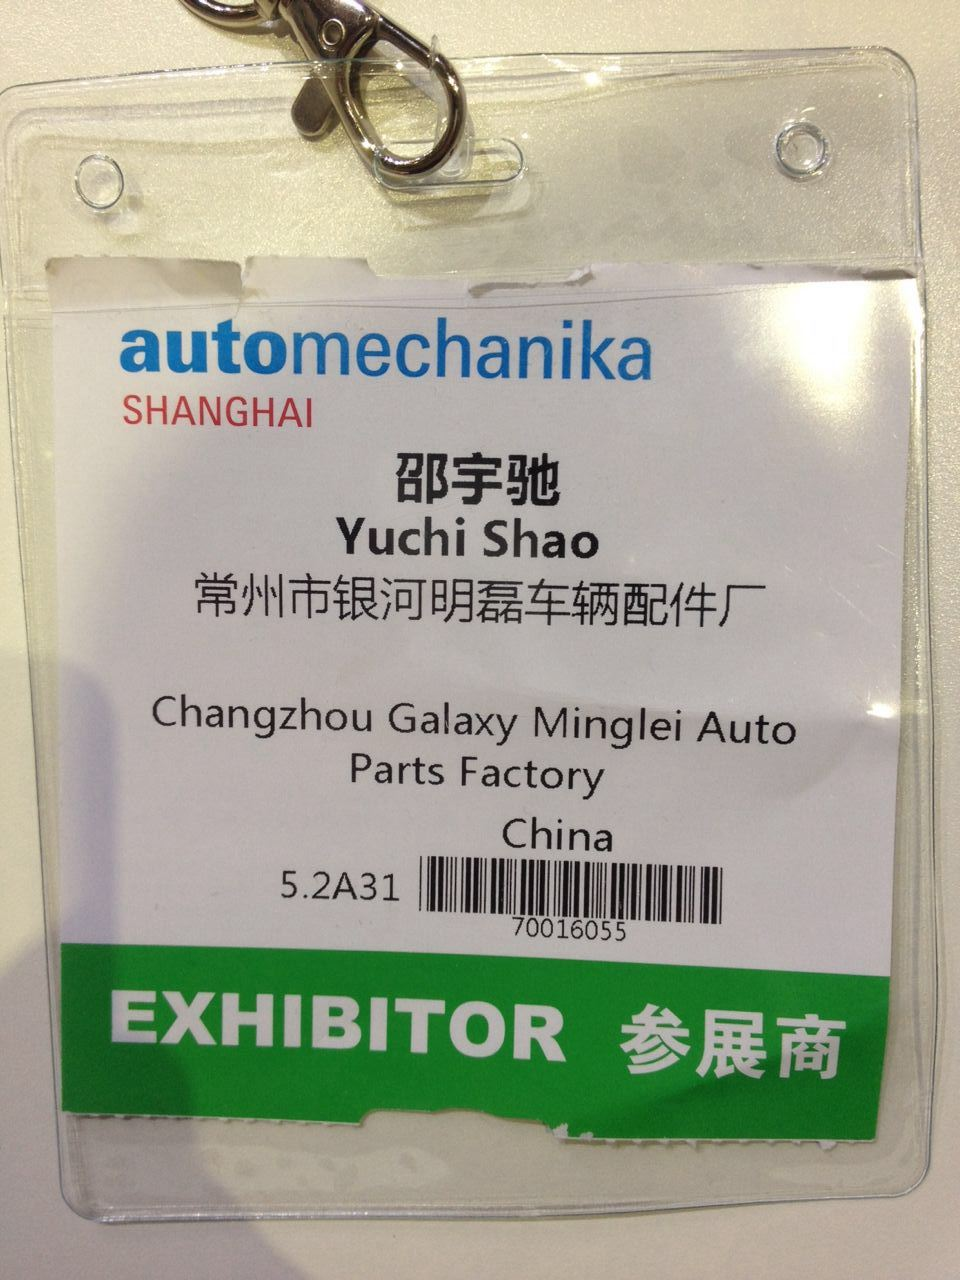 My card in Automechanika